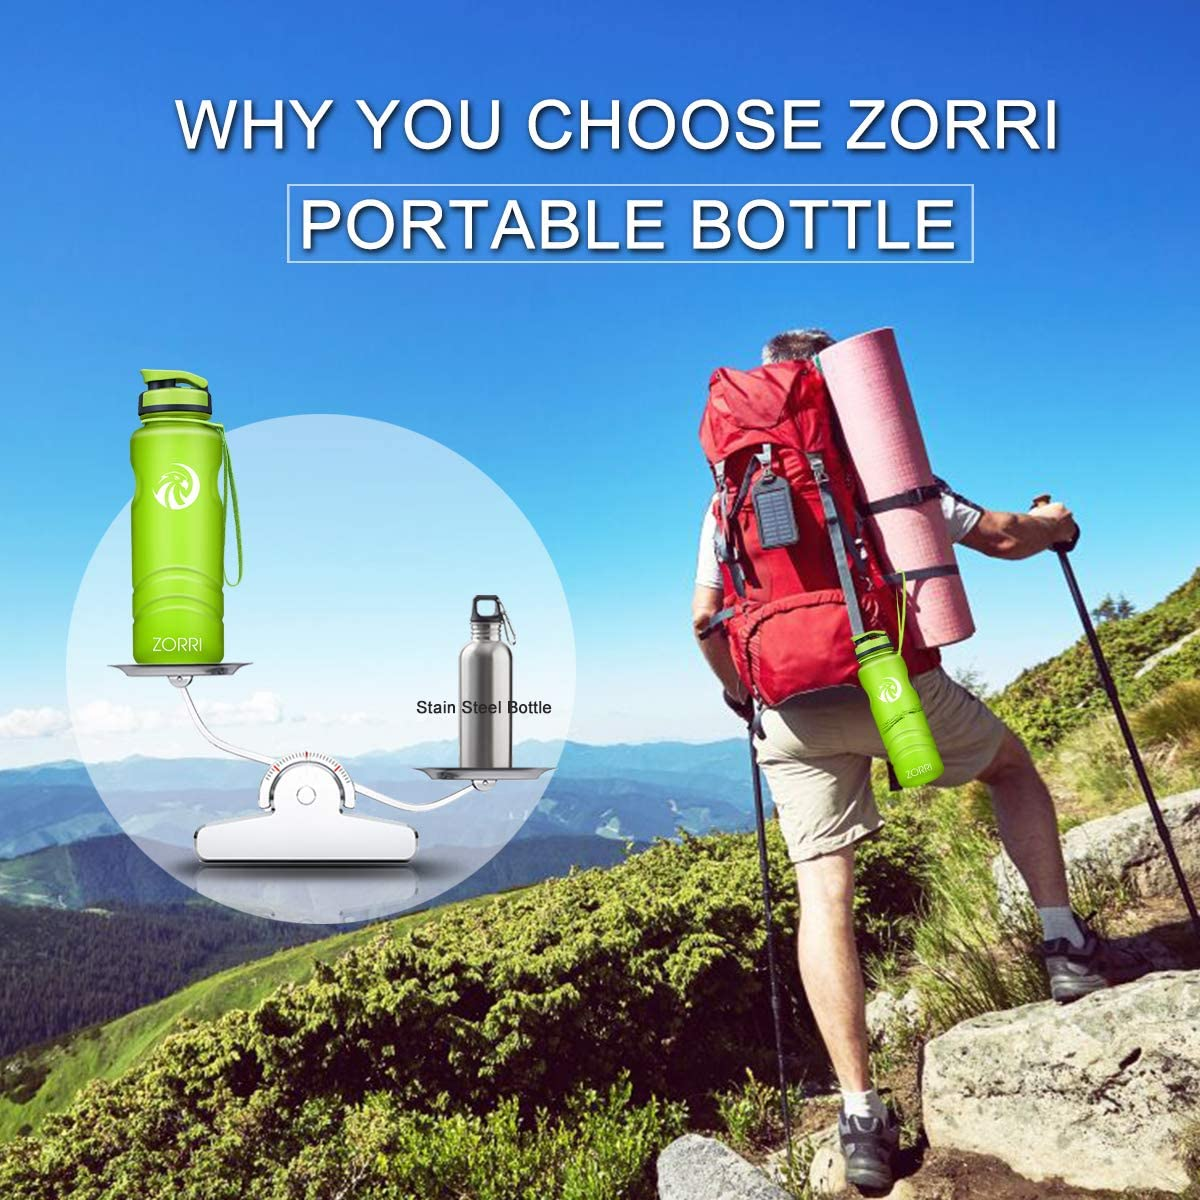 Cycling BPA Free Lightweight Reusable Gym Portable Large Drink Bottles With Filter for Kids Hiking Flip Top Lid Leak Proof Running Best Sports Water Bottle 1L// 1.2 Litre// 600// 800ml Camping